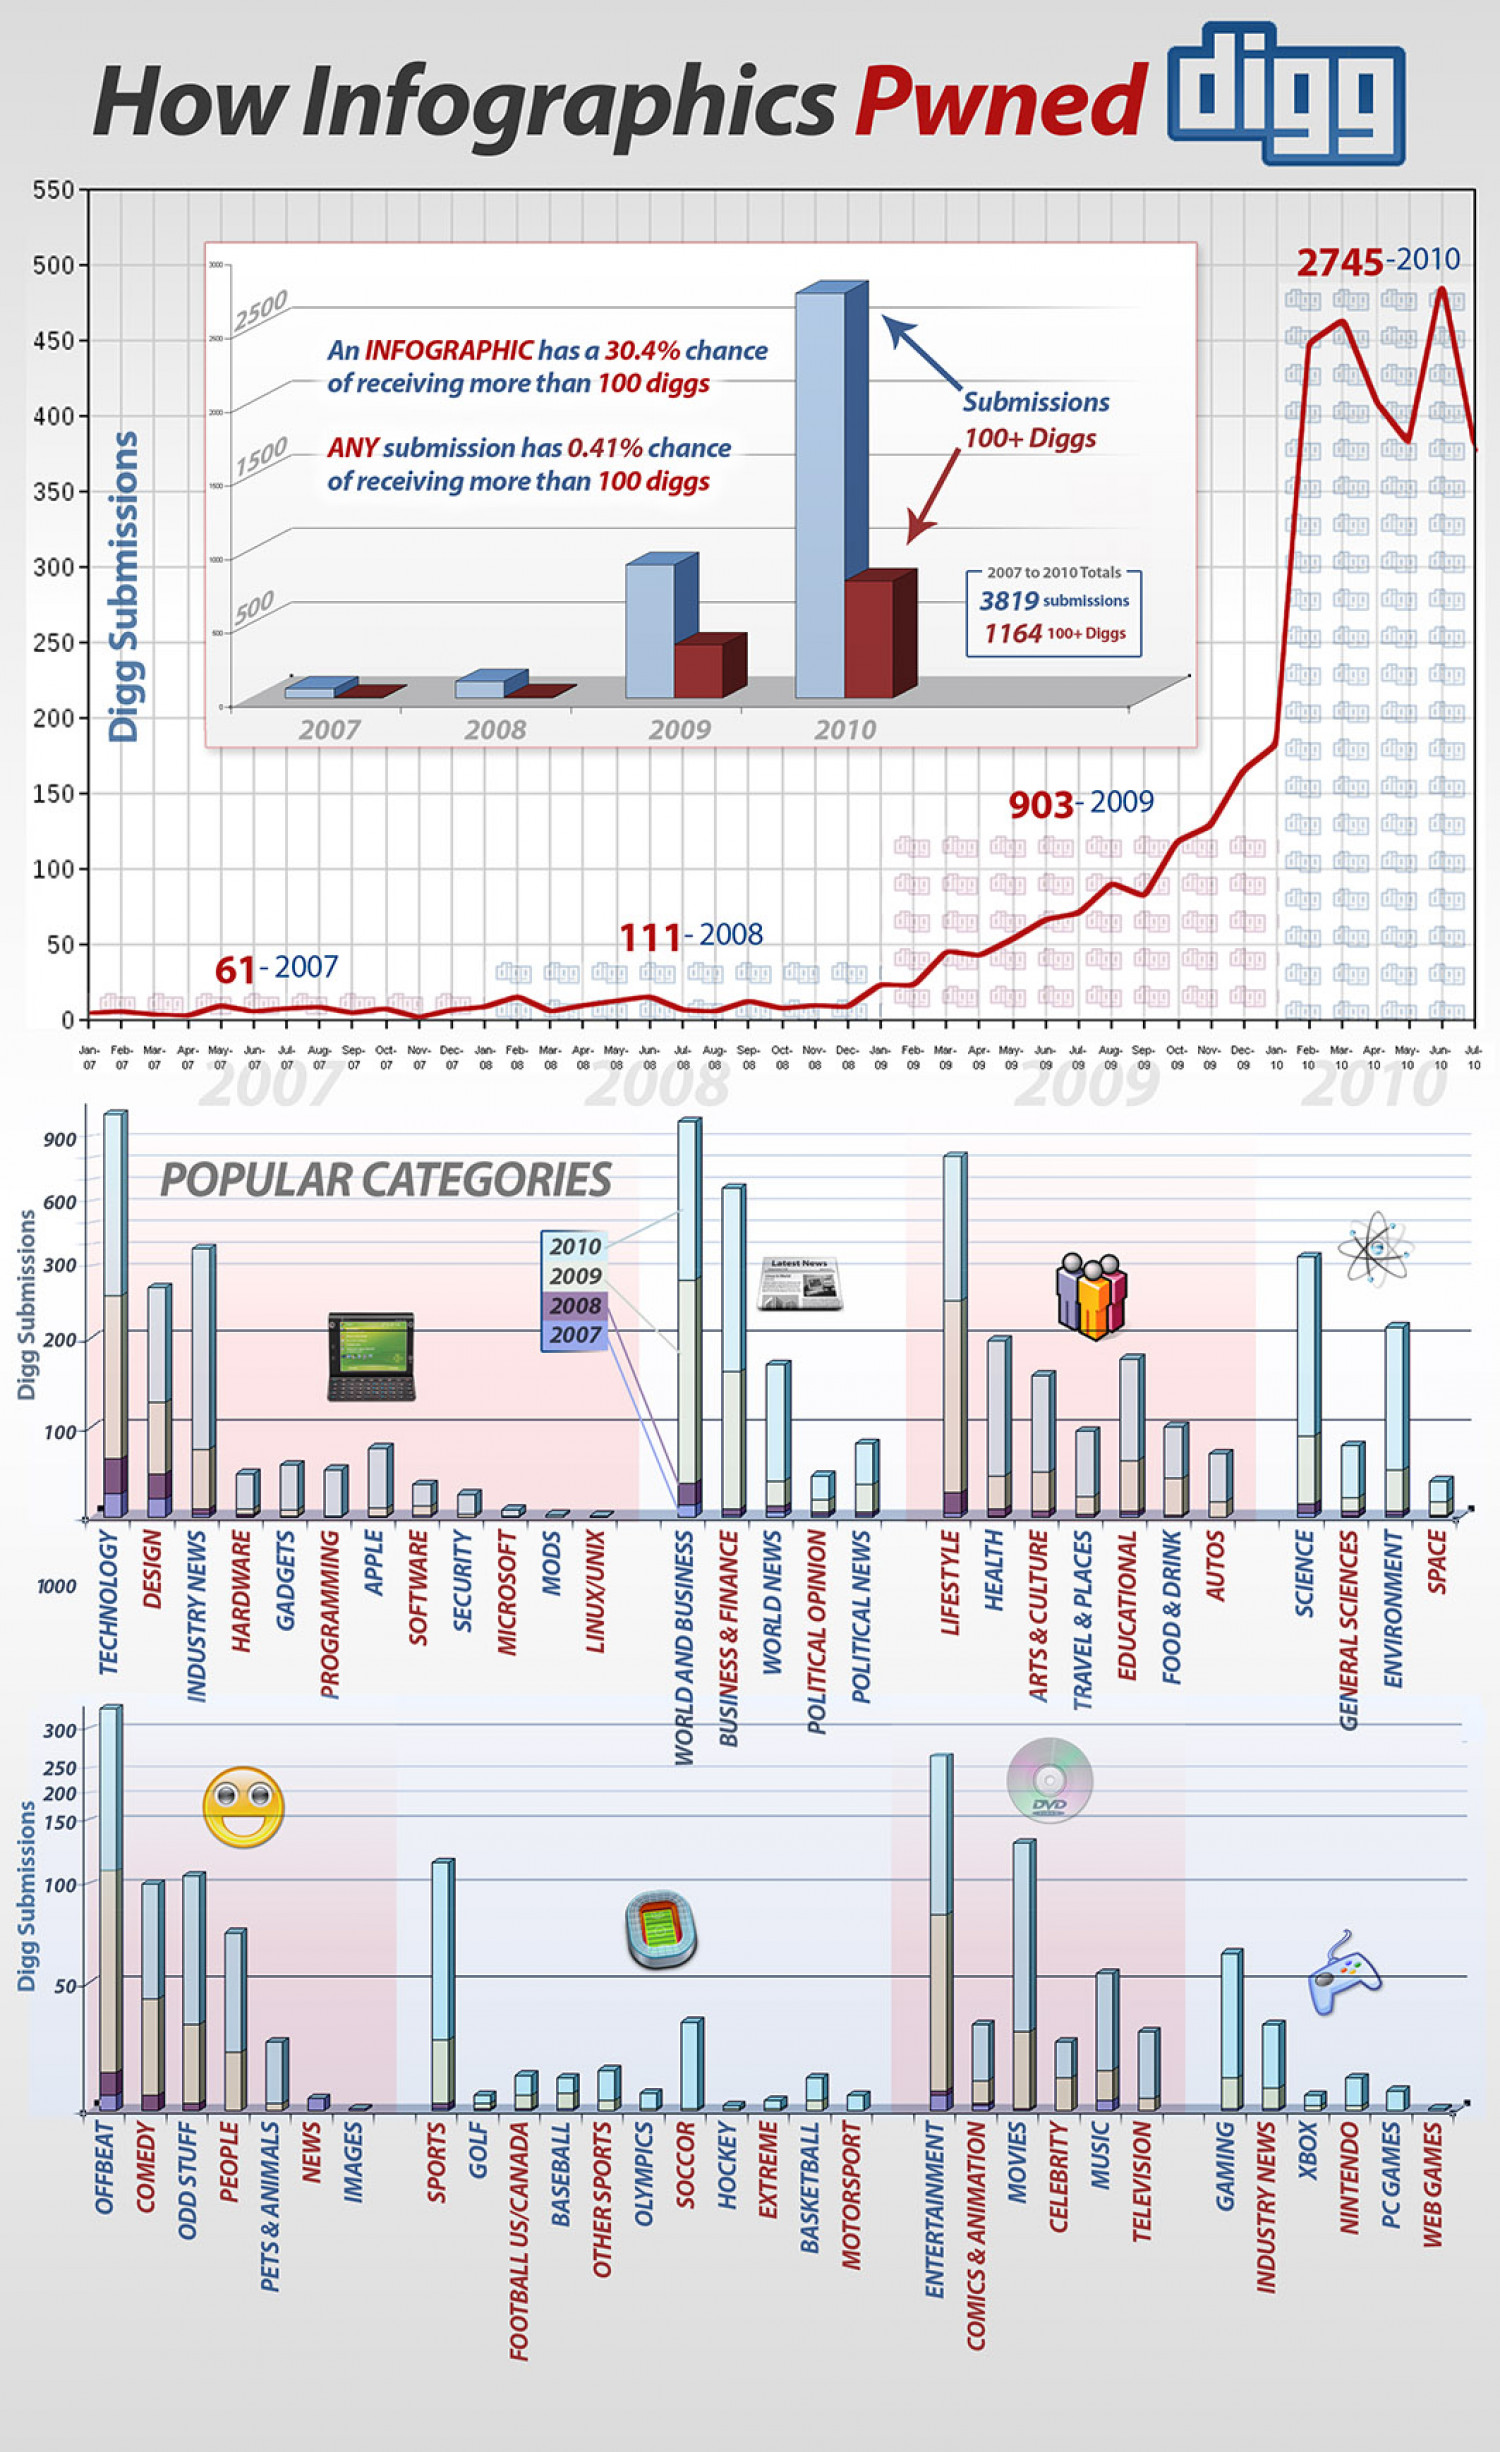 How Infographics Pwned digg Infographic